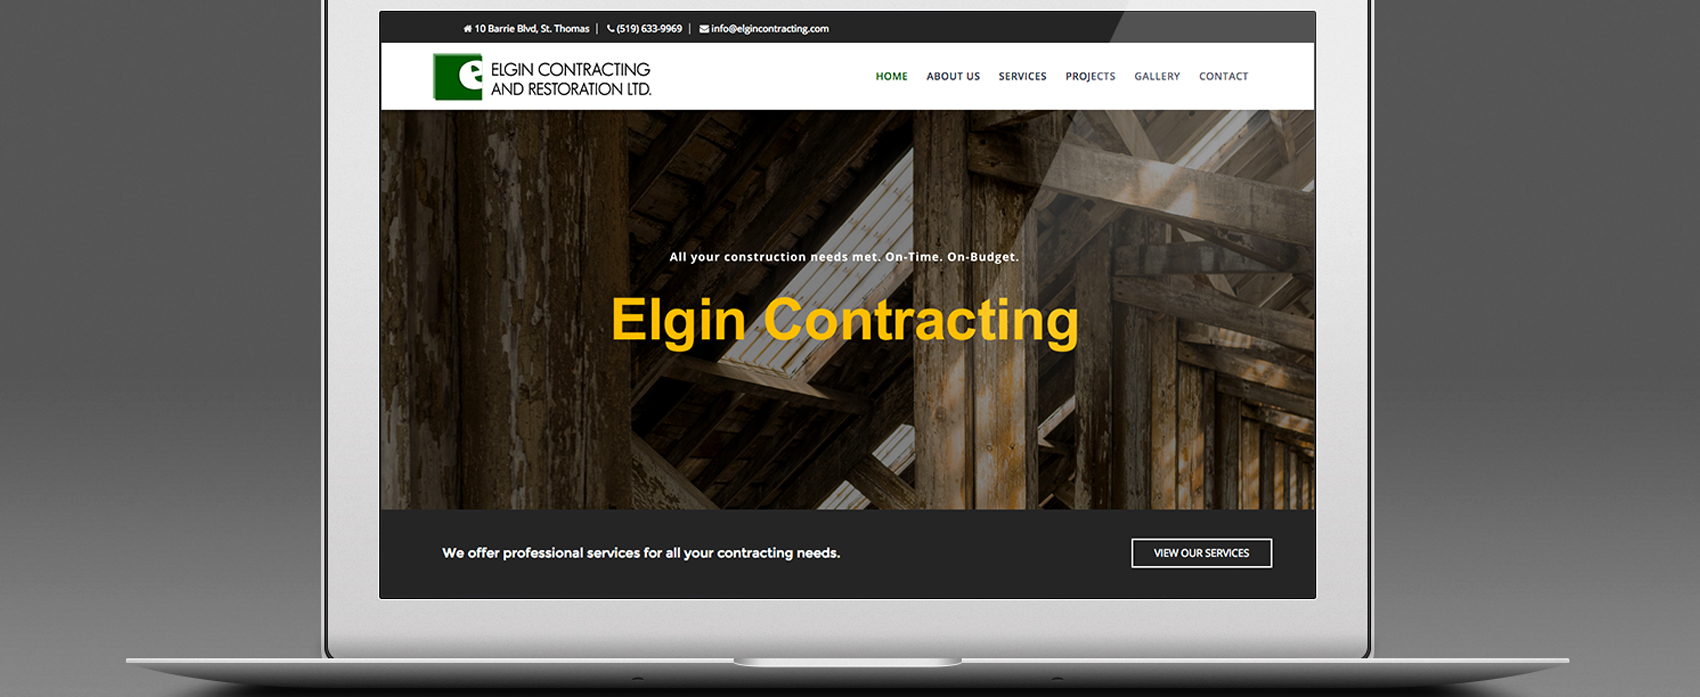 Elgin Contracting Mockup